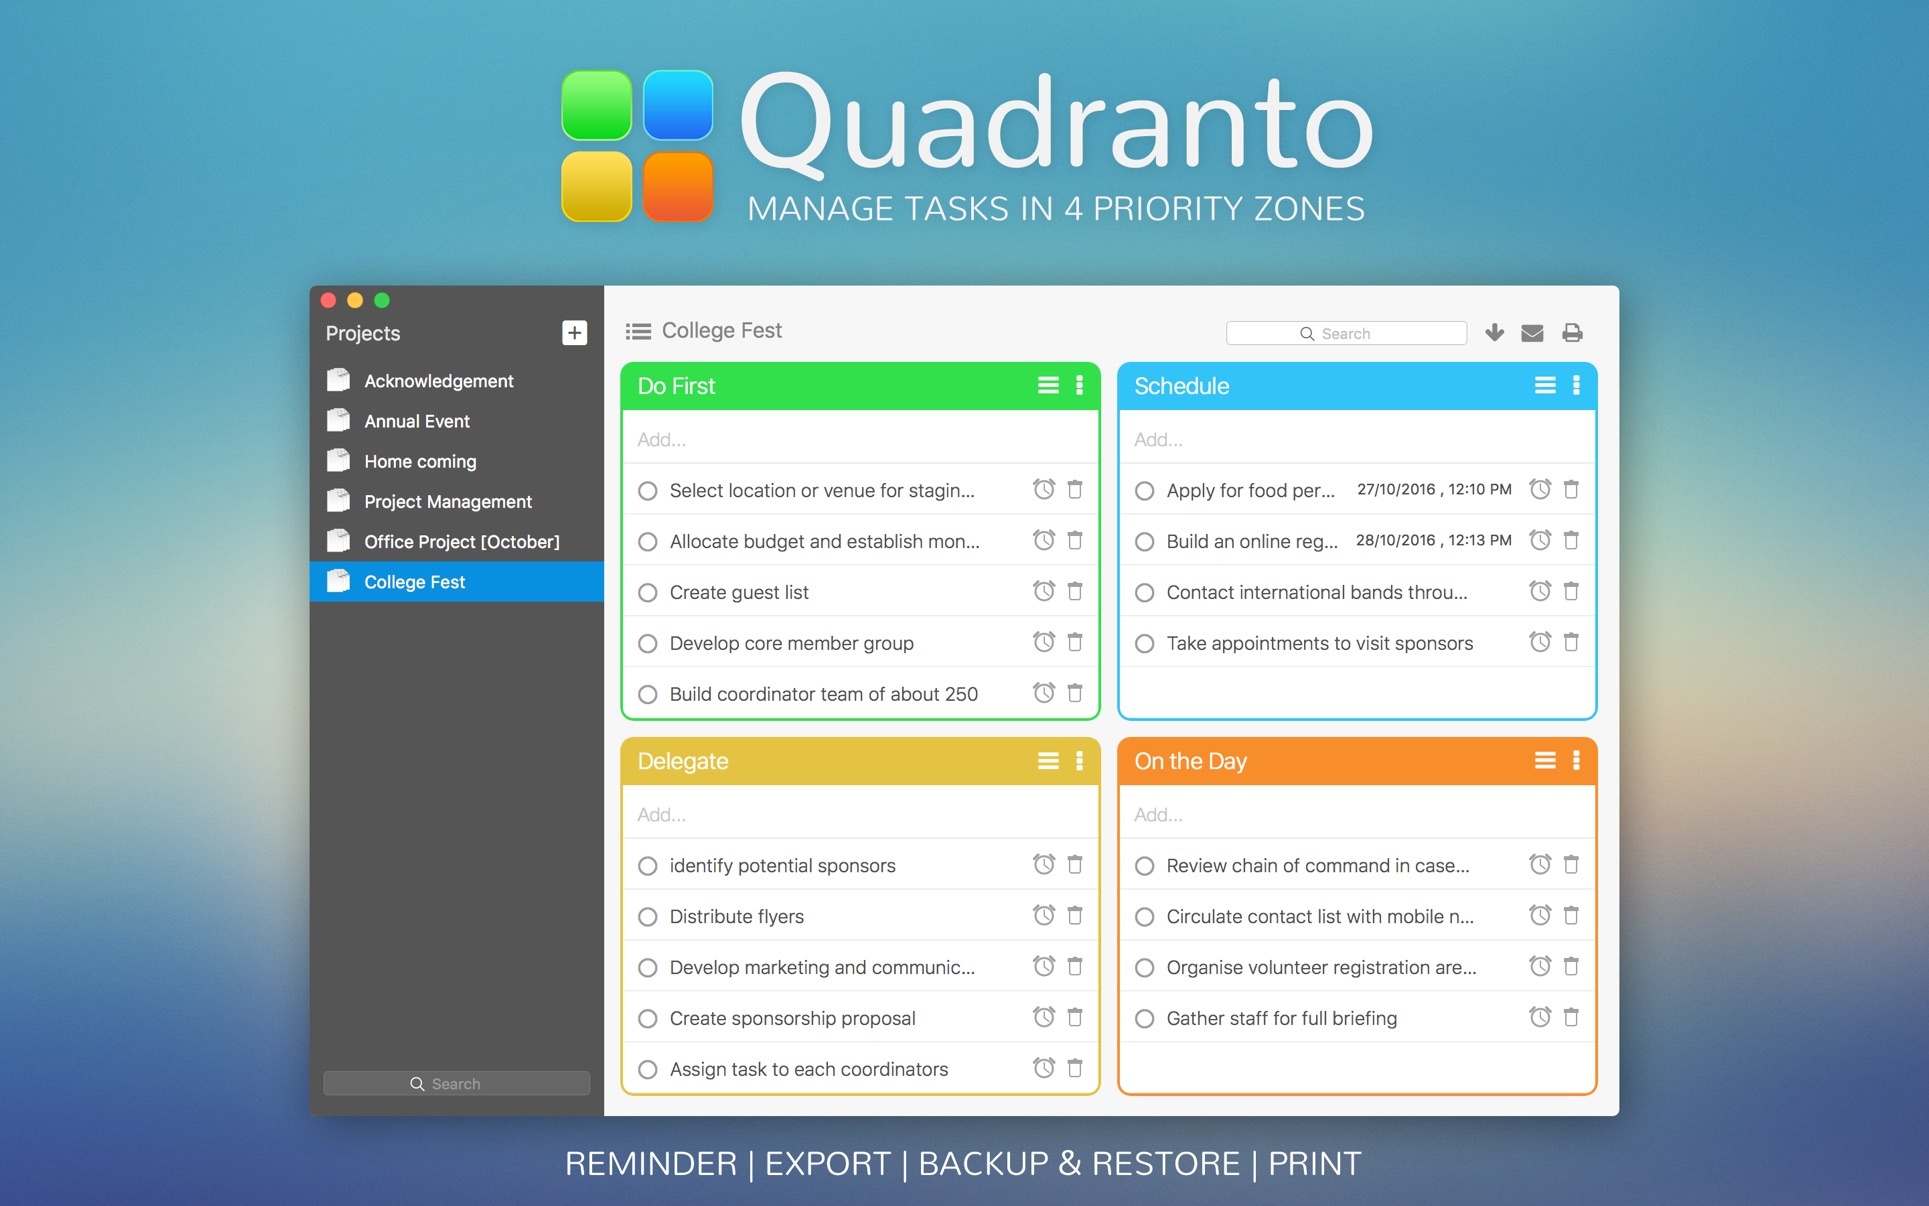 ‎Quadranto - Manage Tasks in 4 Priority Zones on the Mac App Store